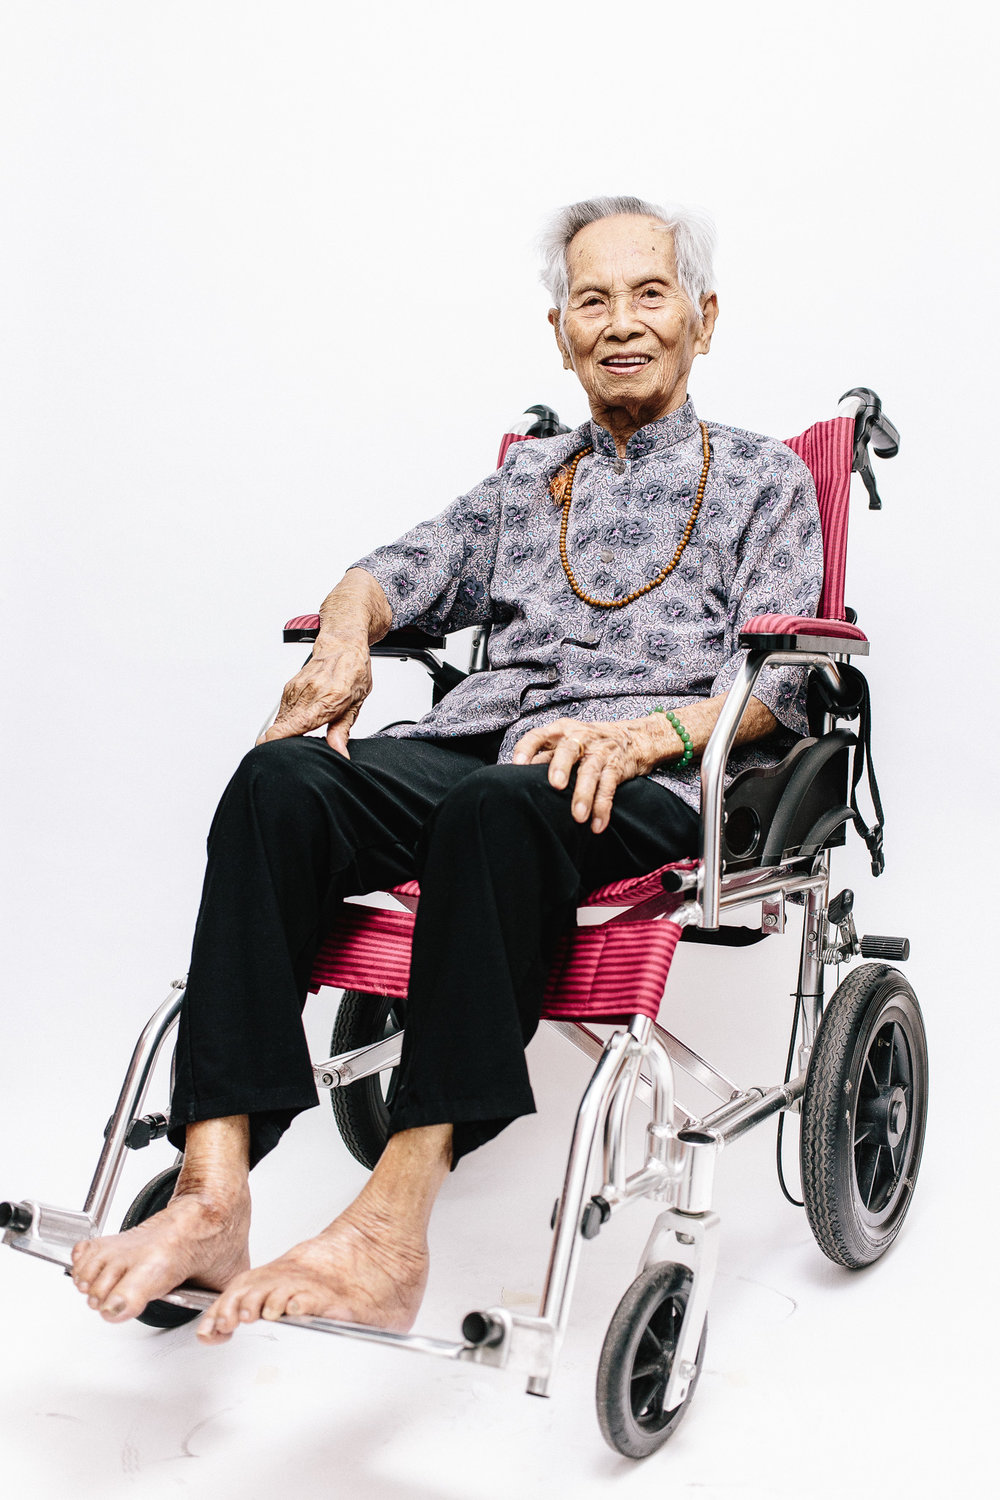 zainal-zainal-studio-centenarians-care-duke-nus-singapore-photographer-10.jpg